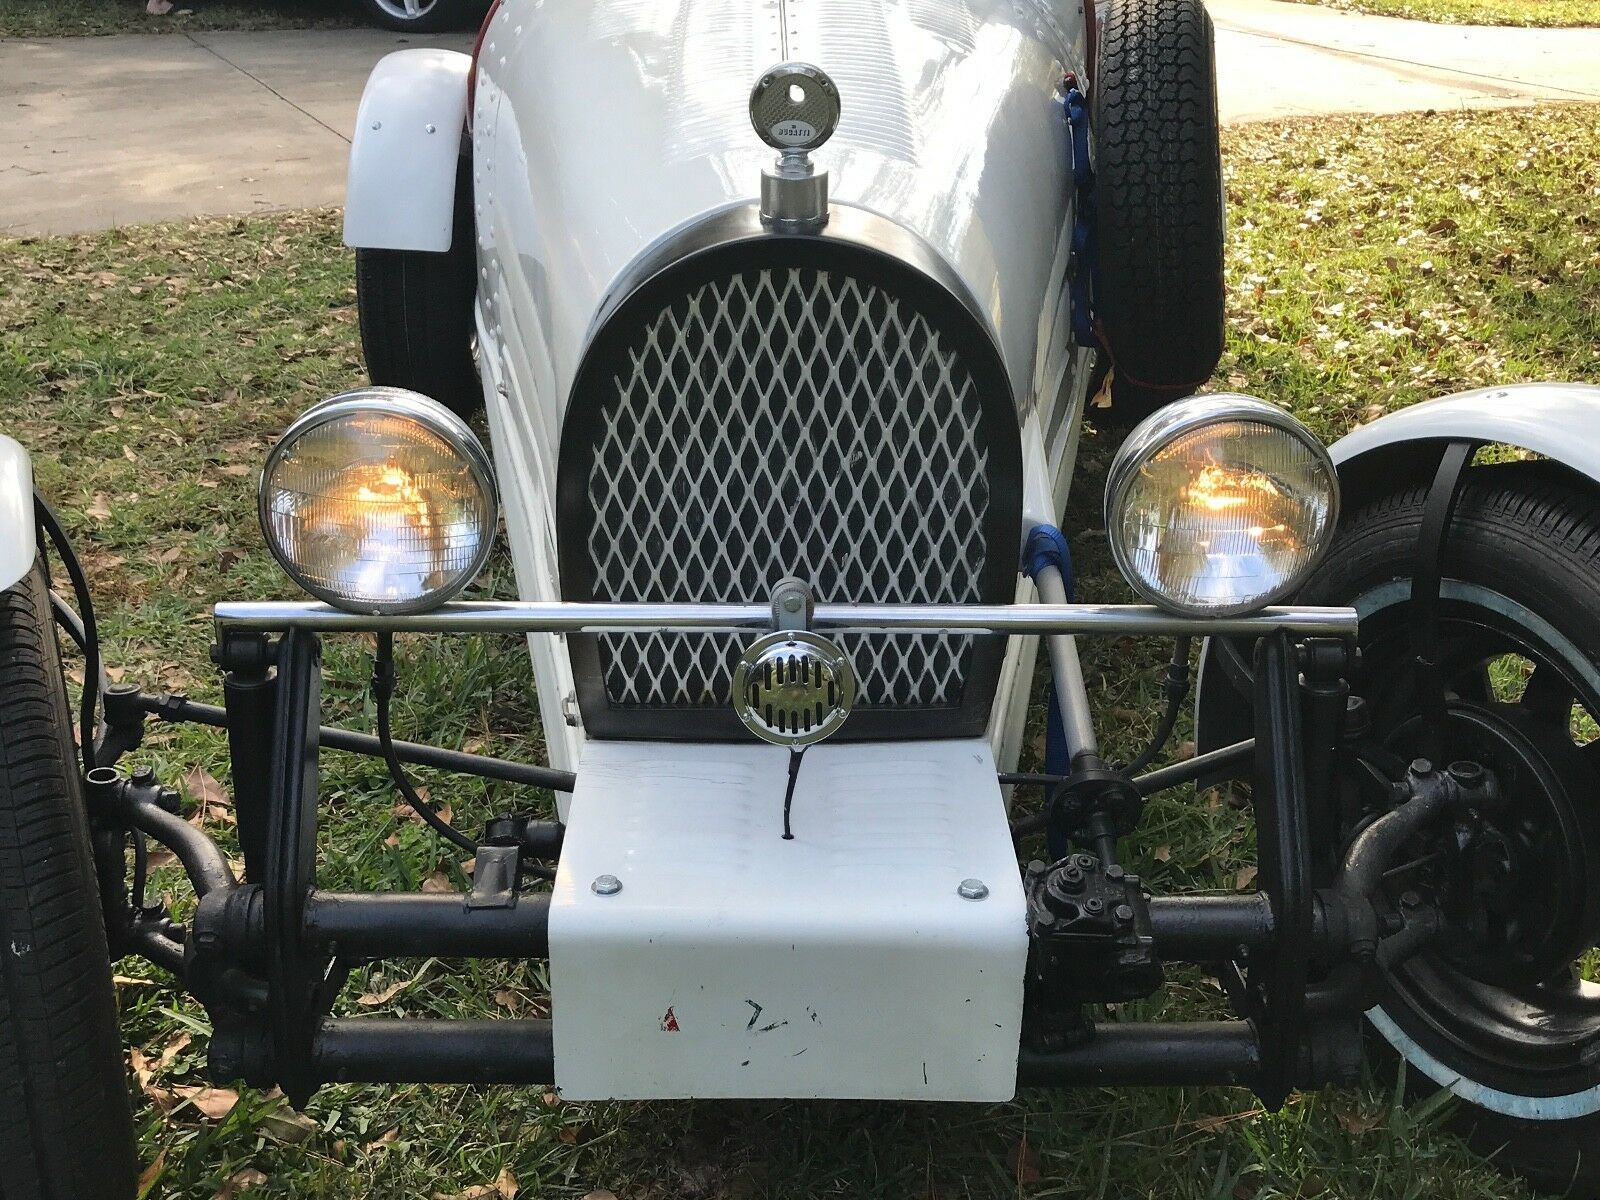 1927 Bugatti Replica Kit Car VW Aircooled Engine